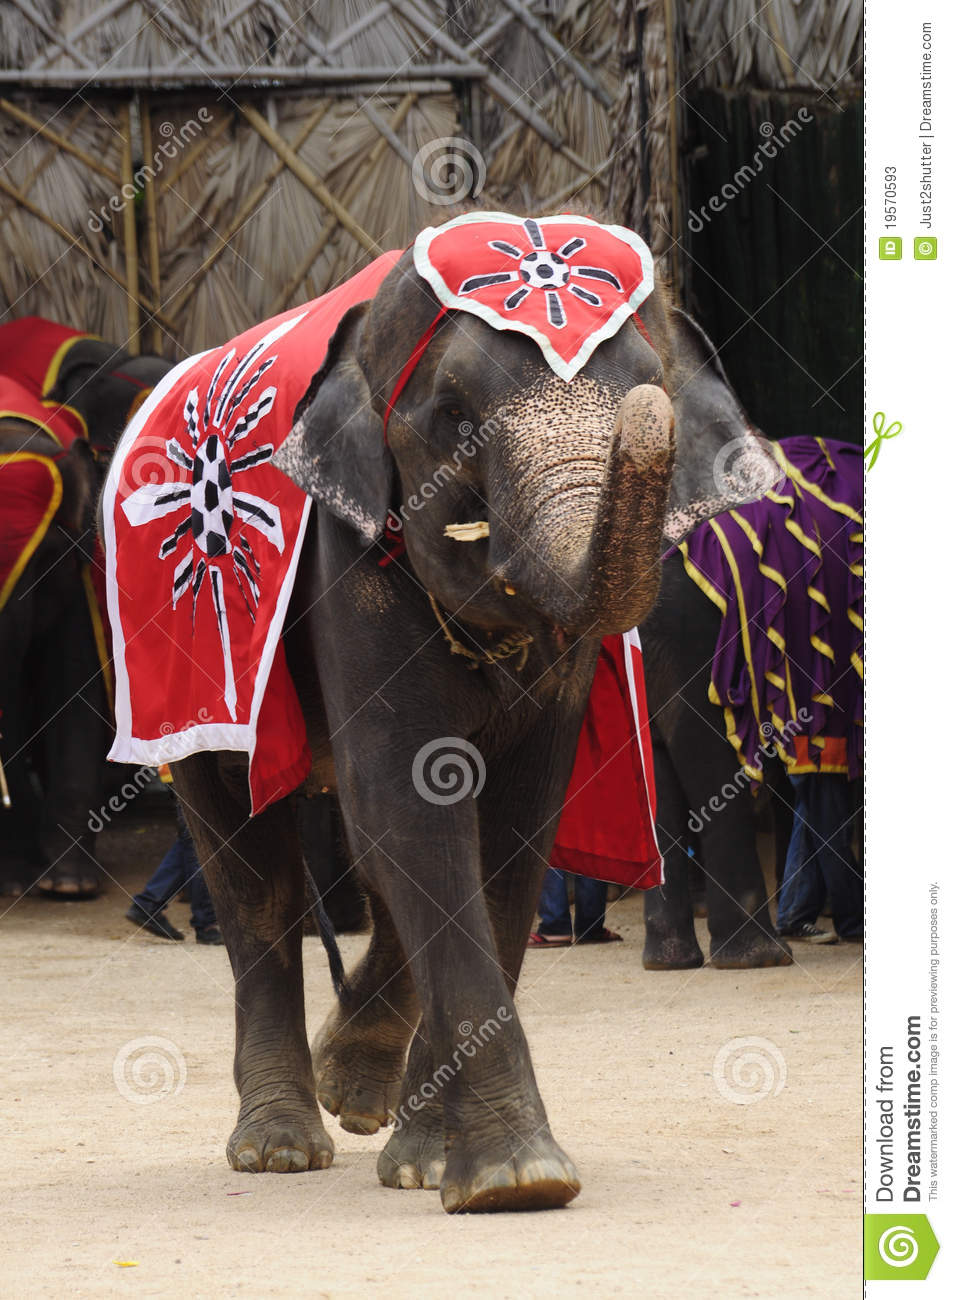 Thai Elephant Wear Red Cloth Editorial Stock Photo Image